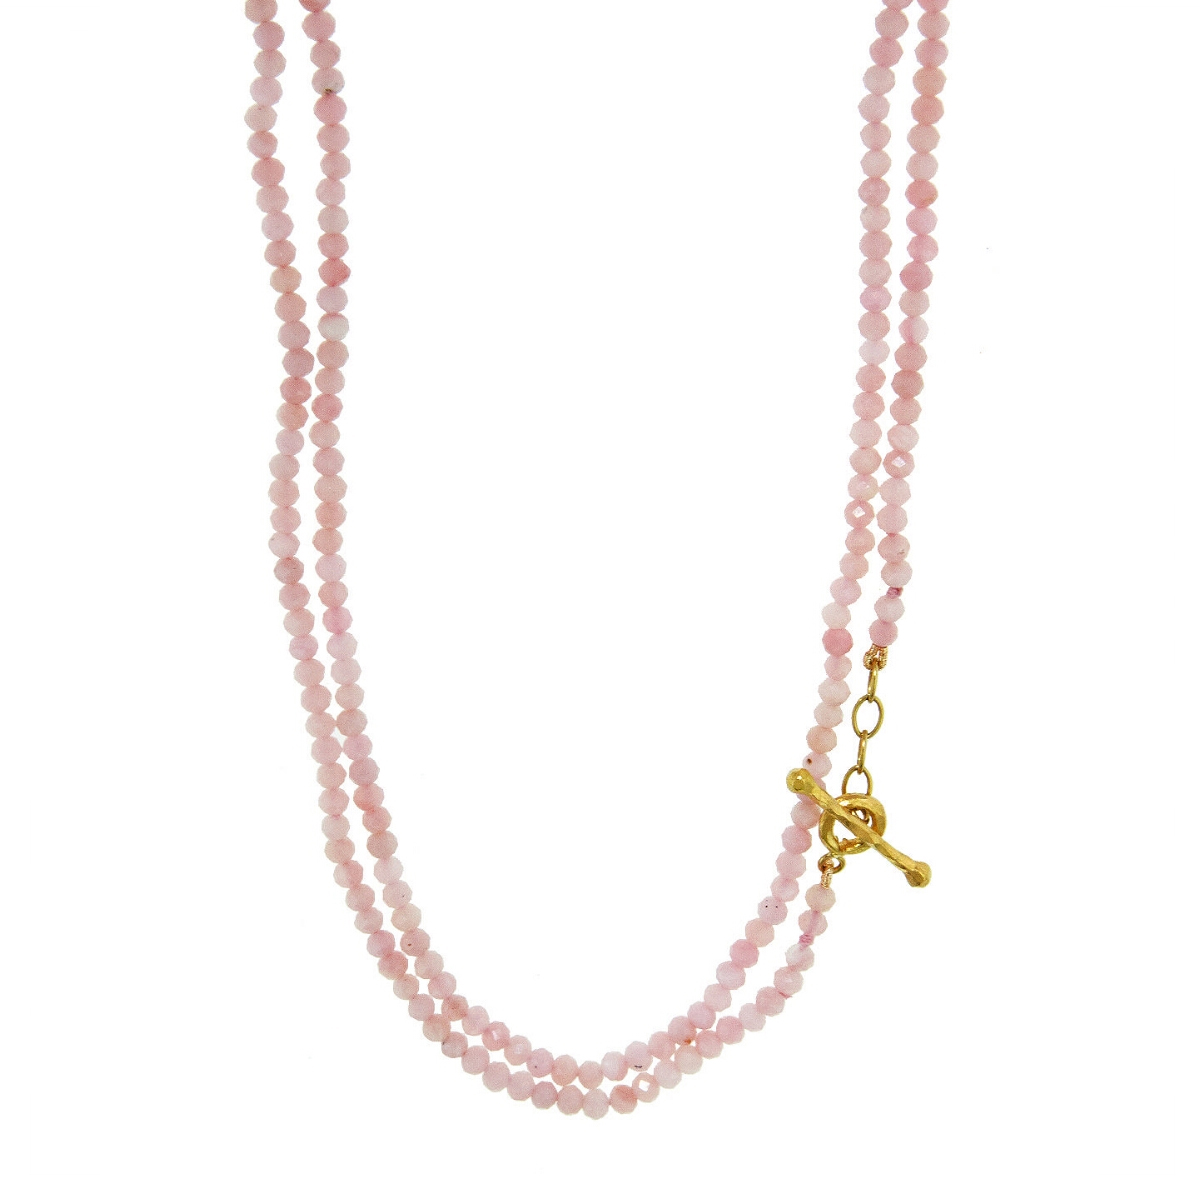 ylang pink necklace.jpg